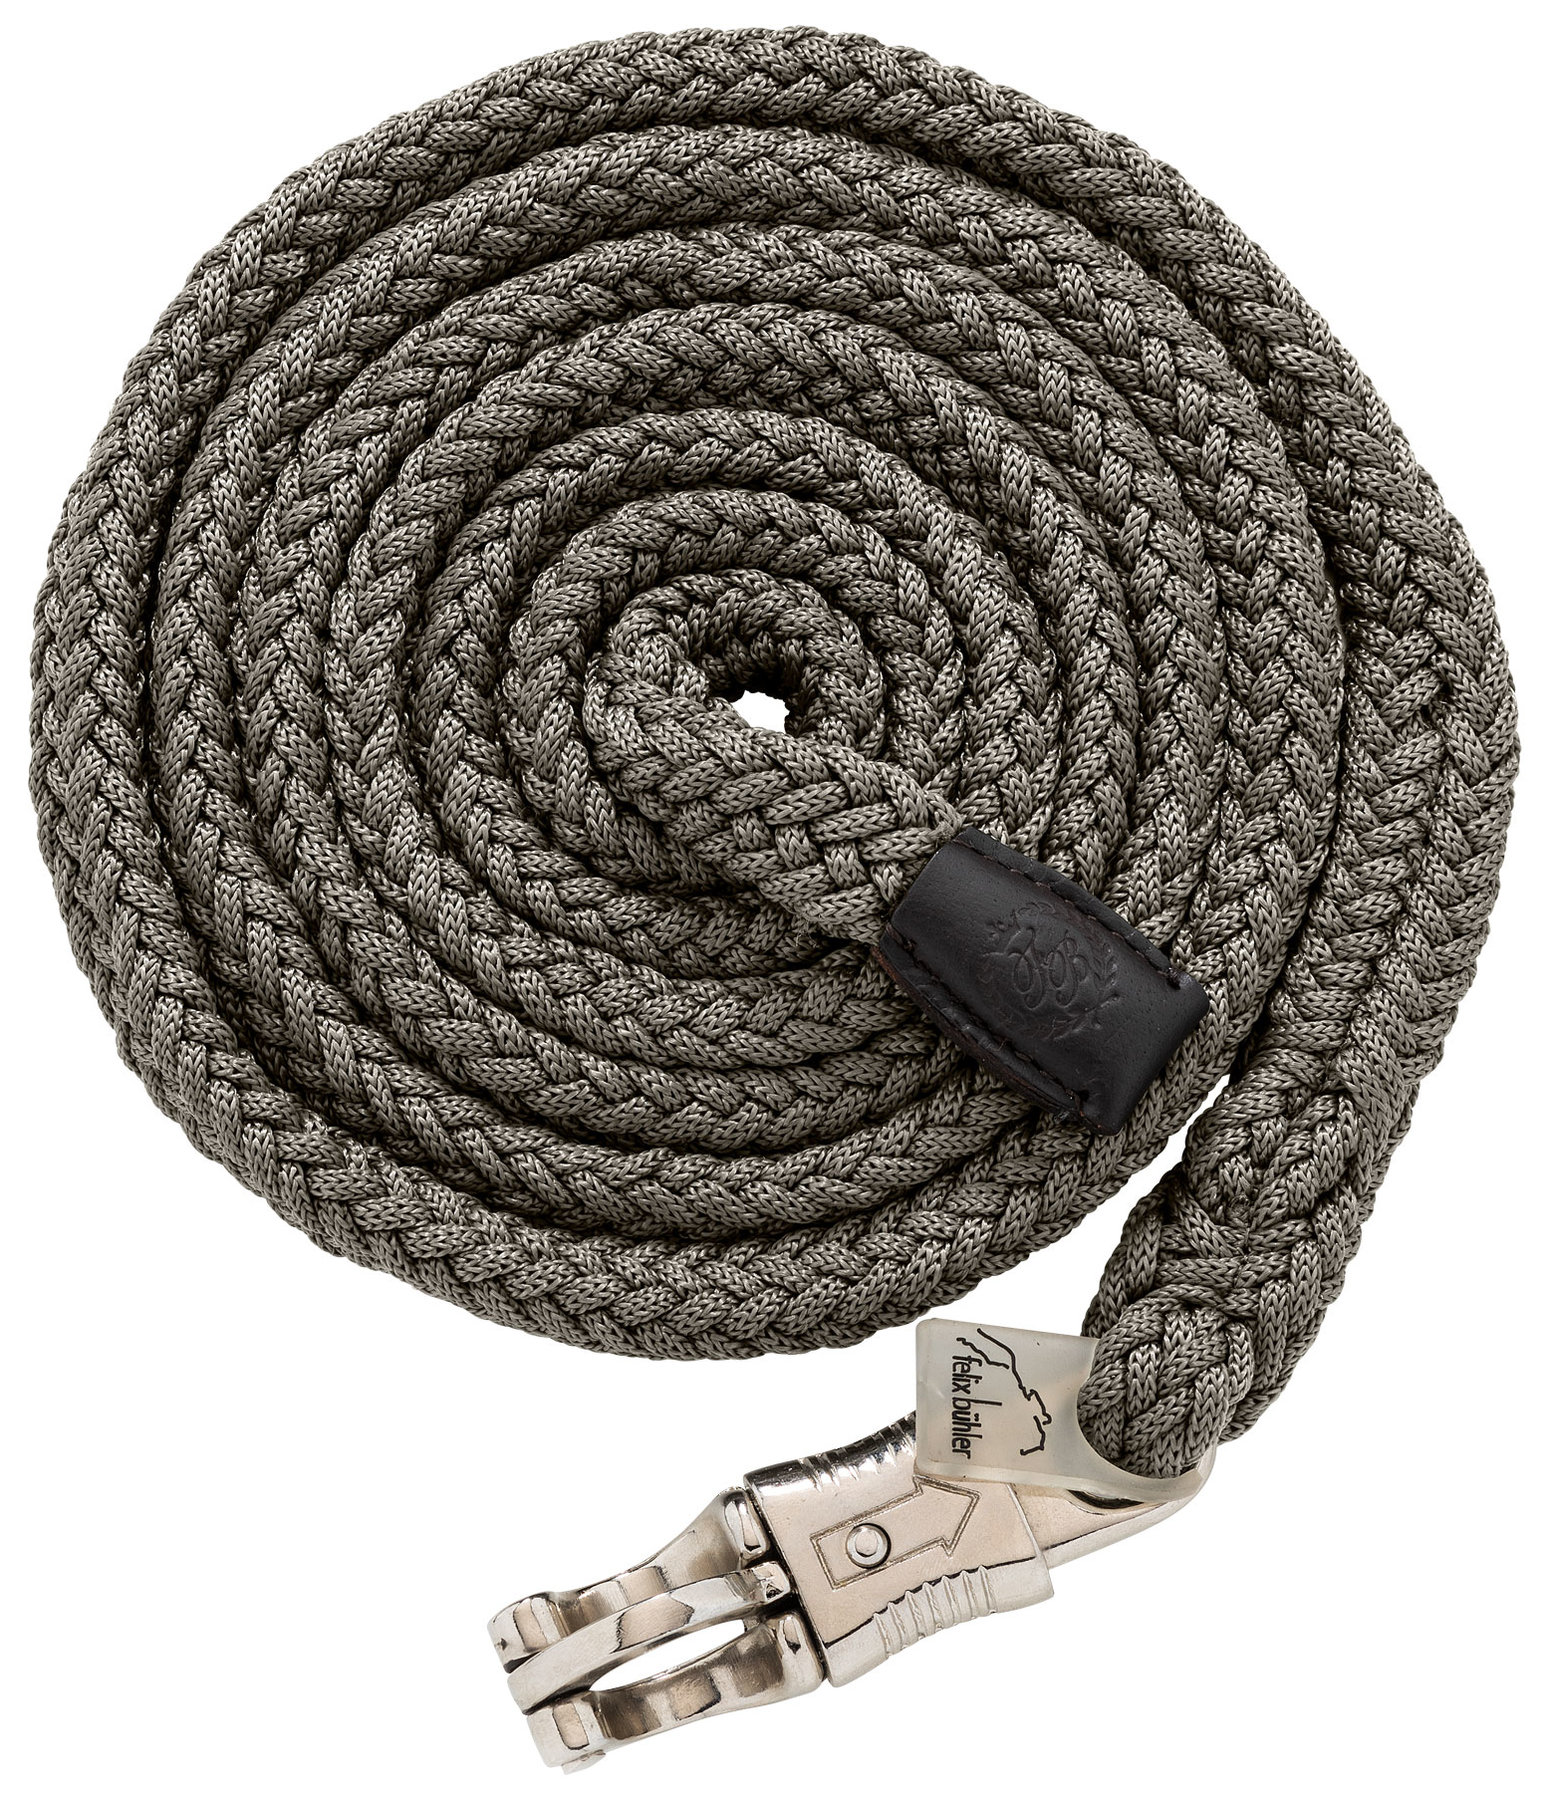 Lead Rope Timeless Elegance with Panic Snap